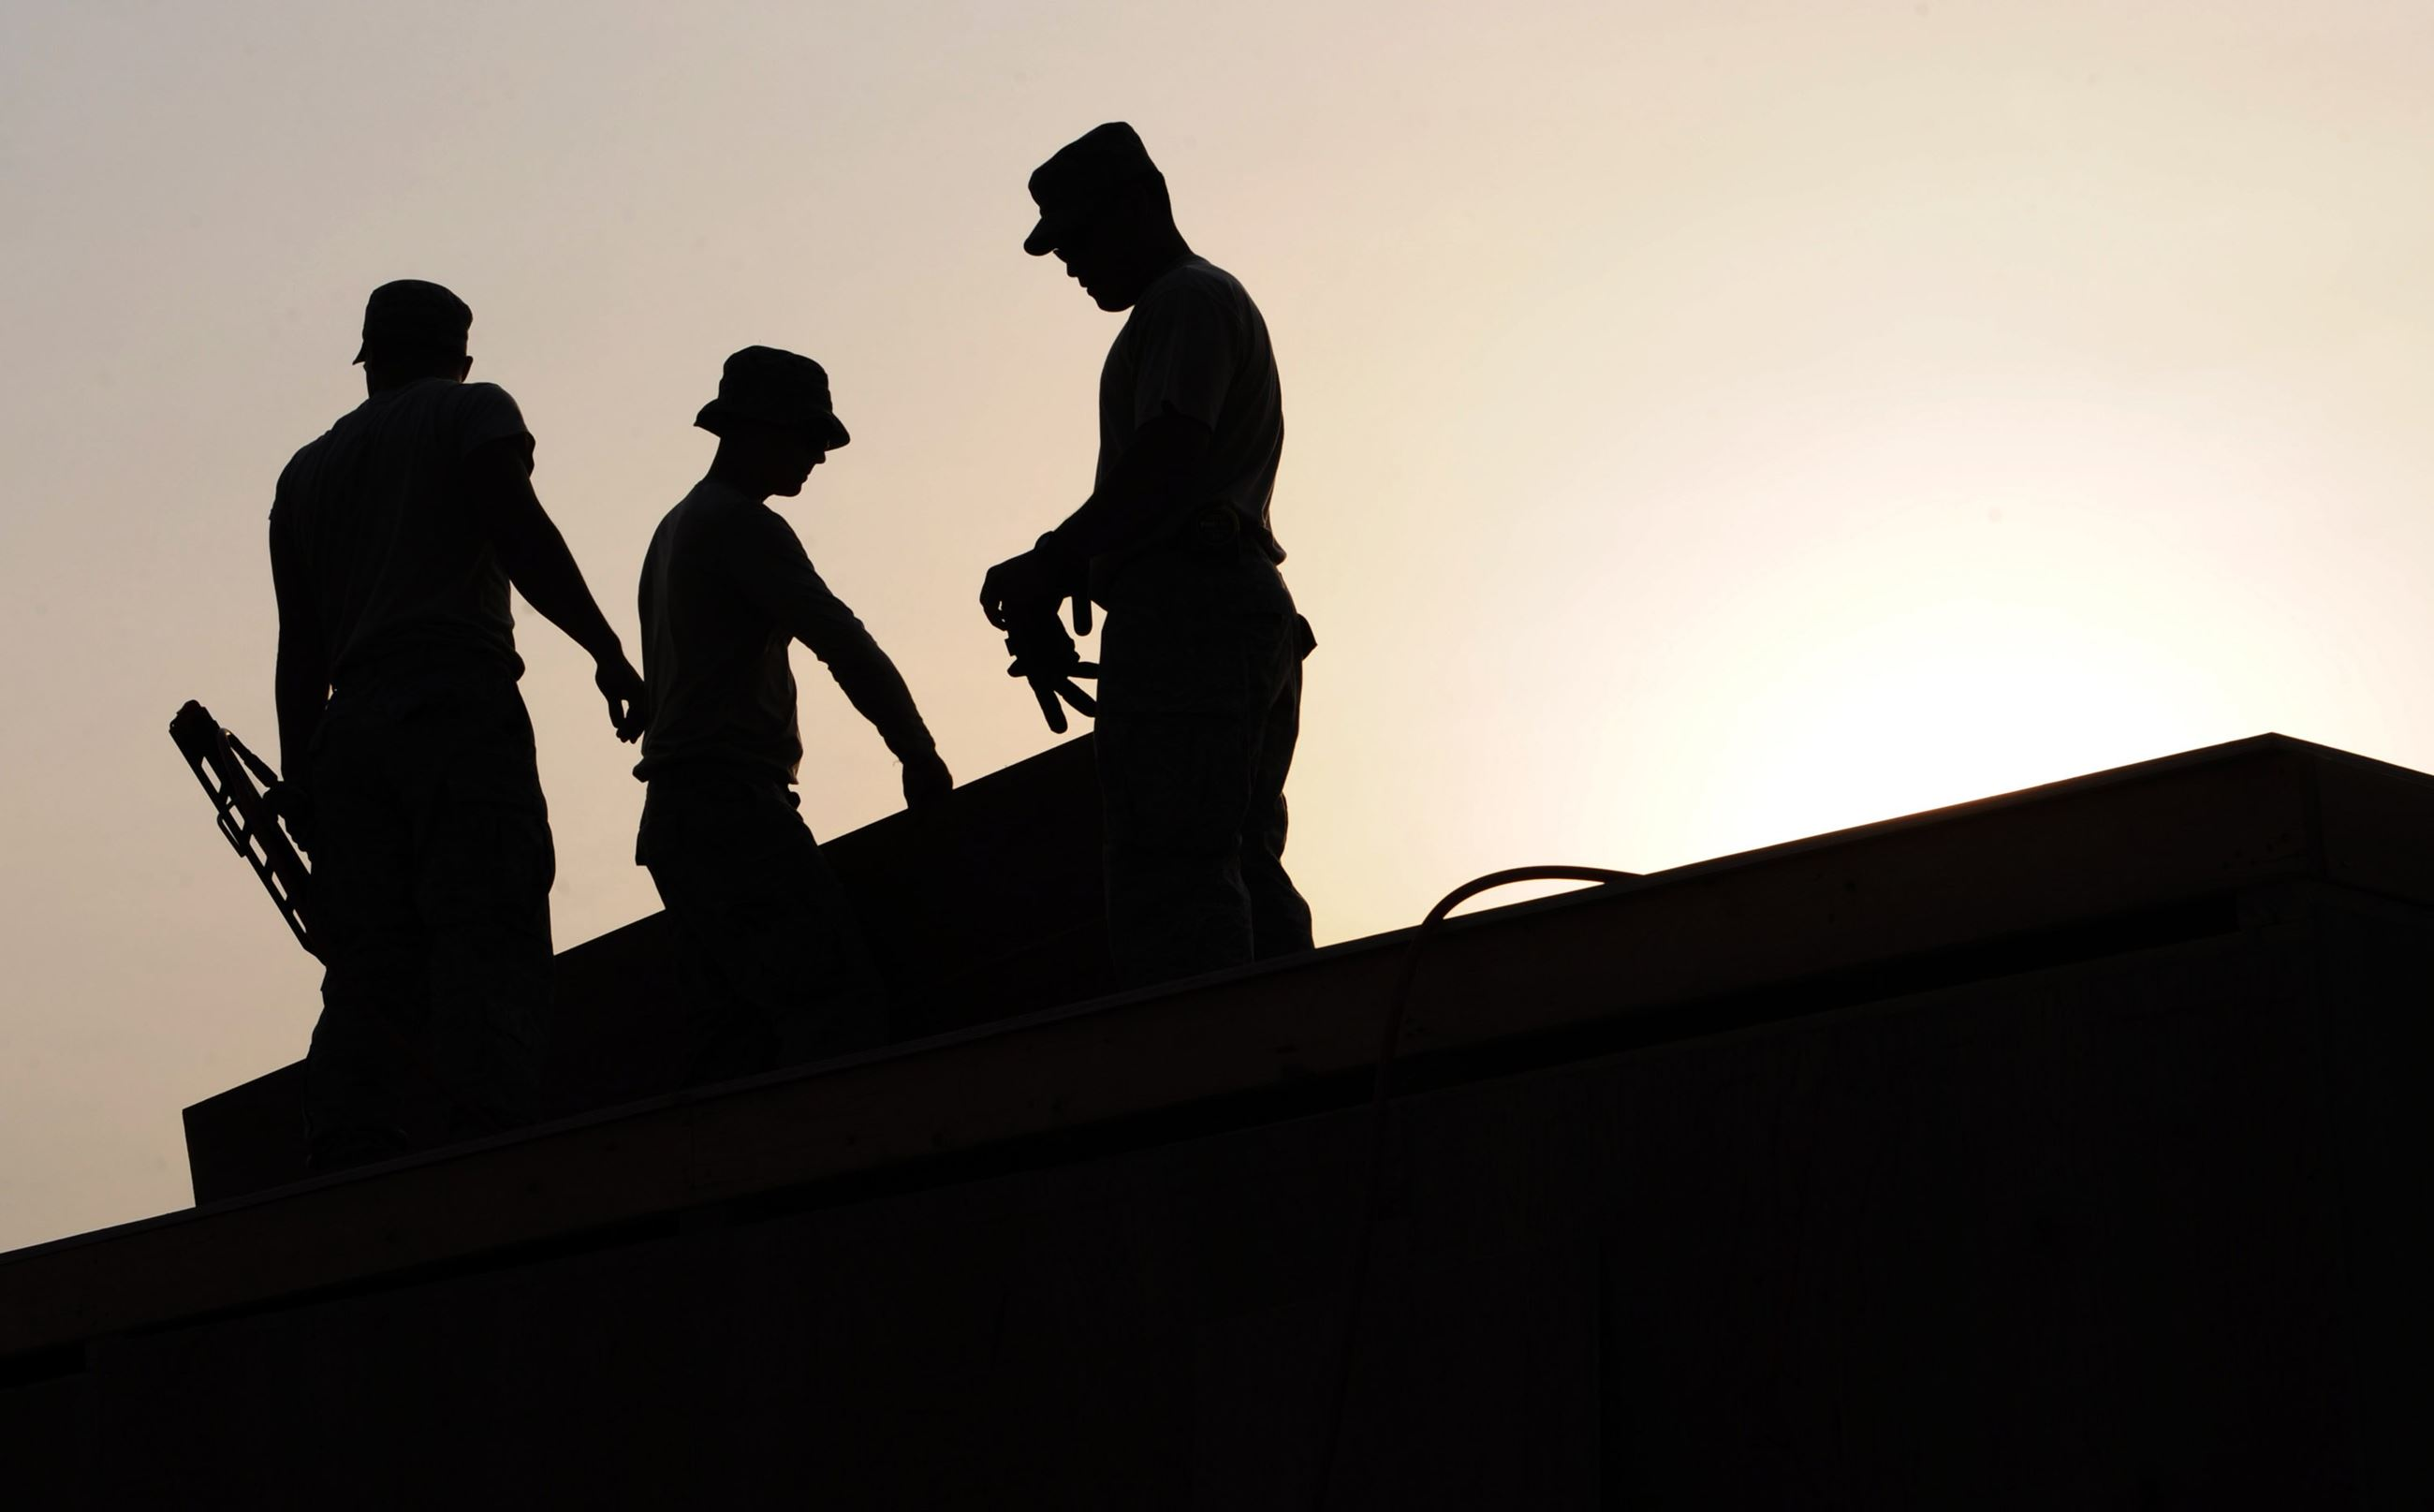 Image of a Sunrise Silhouette of three construction workers with tools